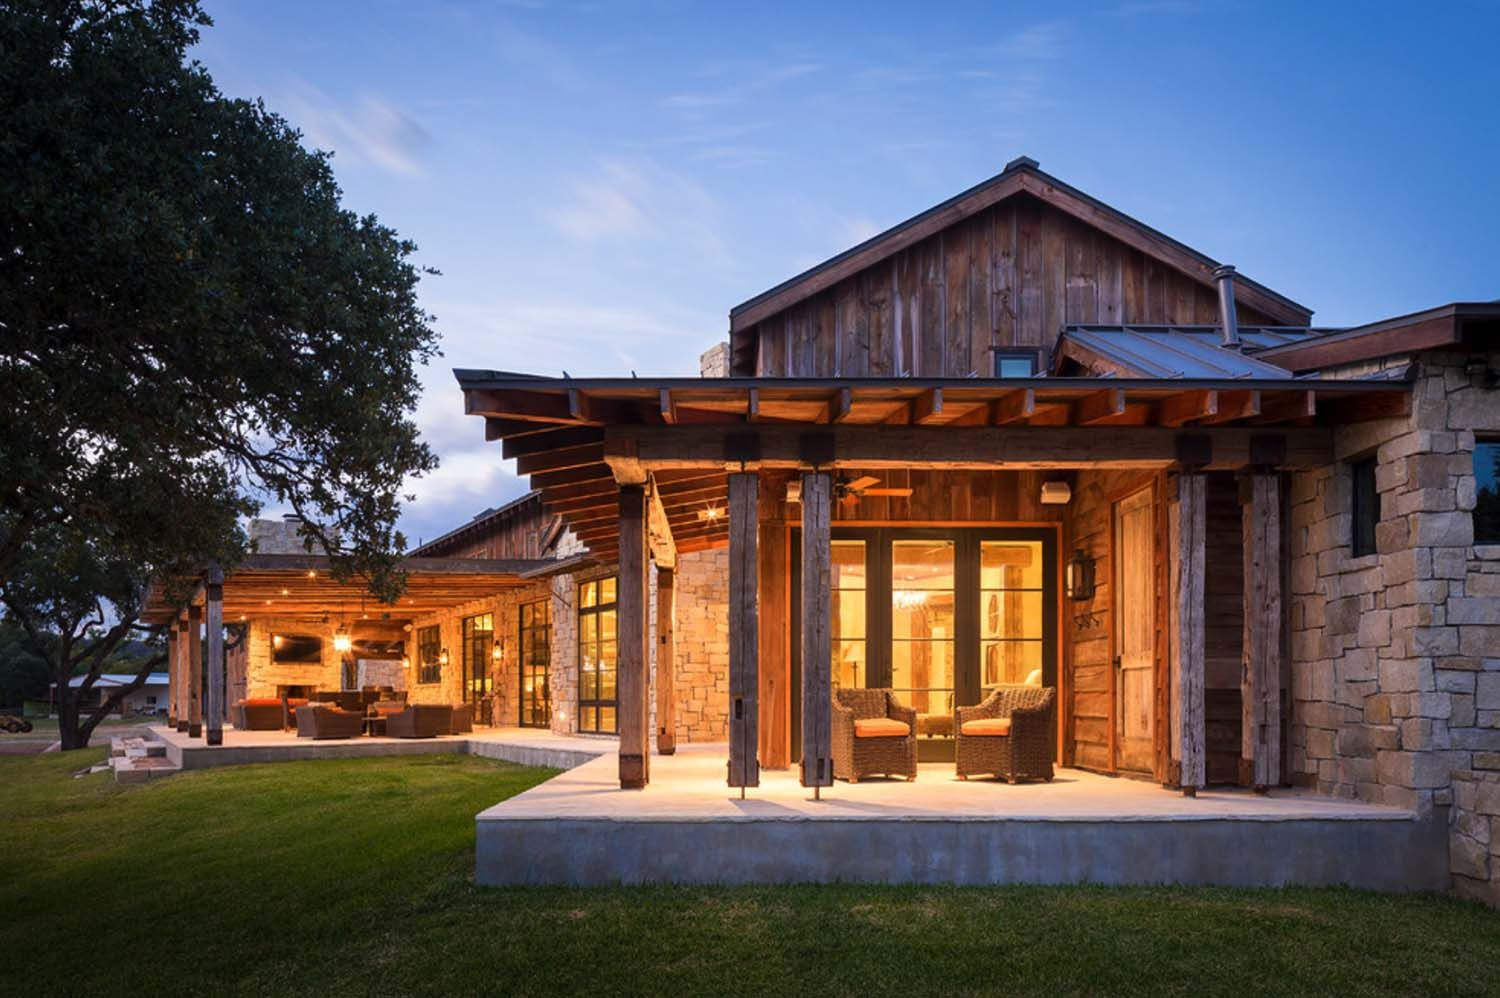 Modern rustic barn style retreat in texas hill country Hill country style house plans